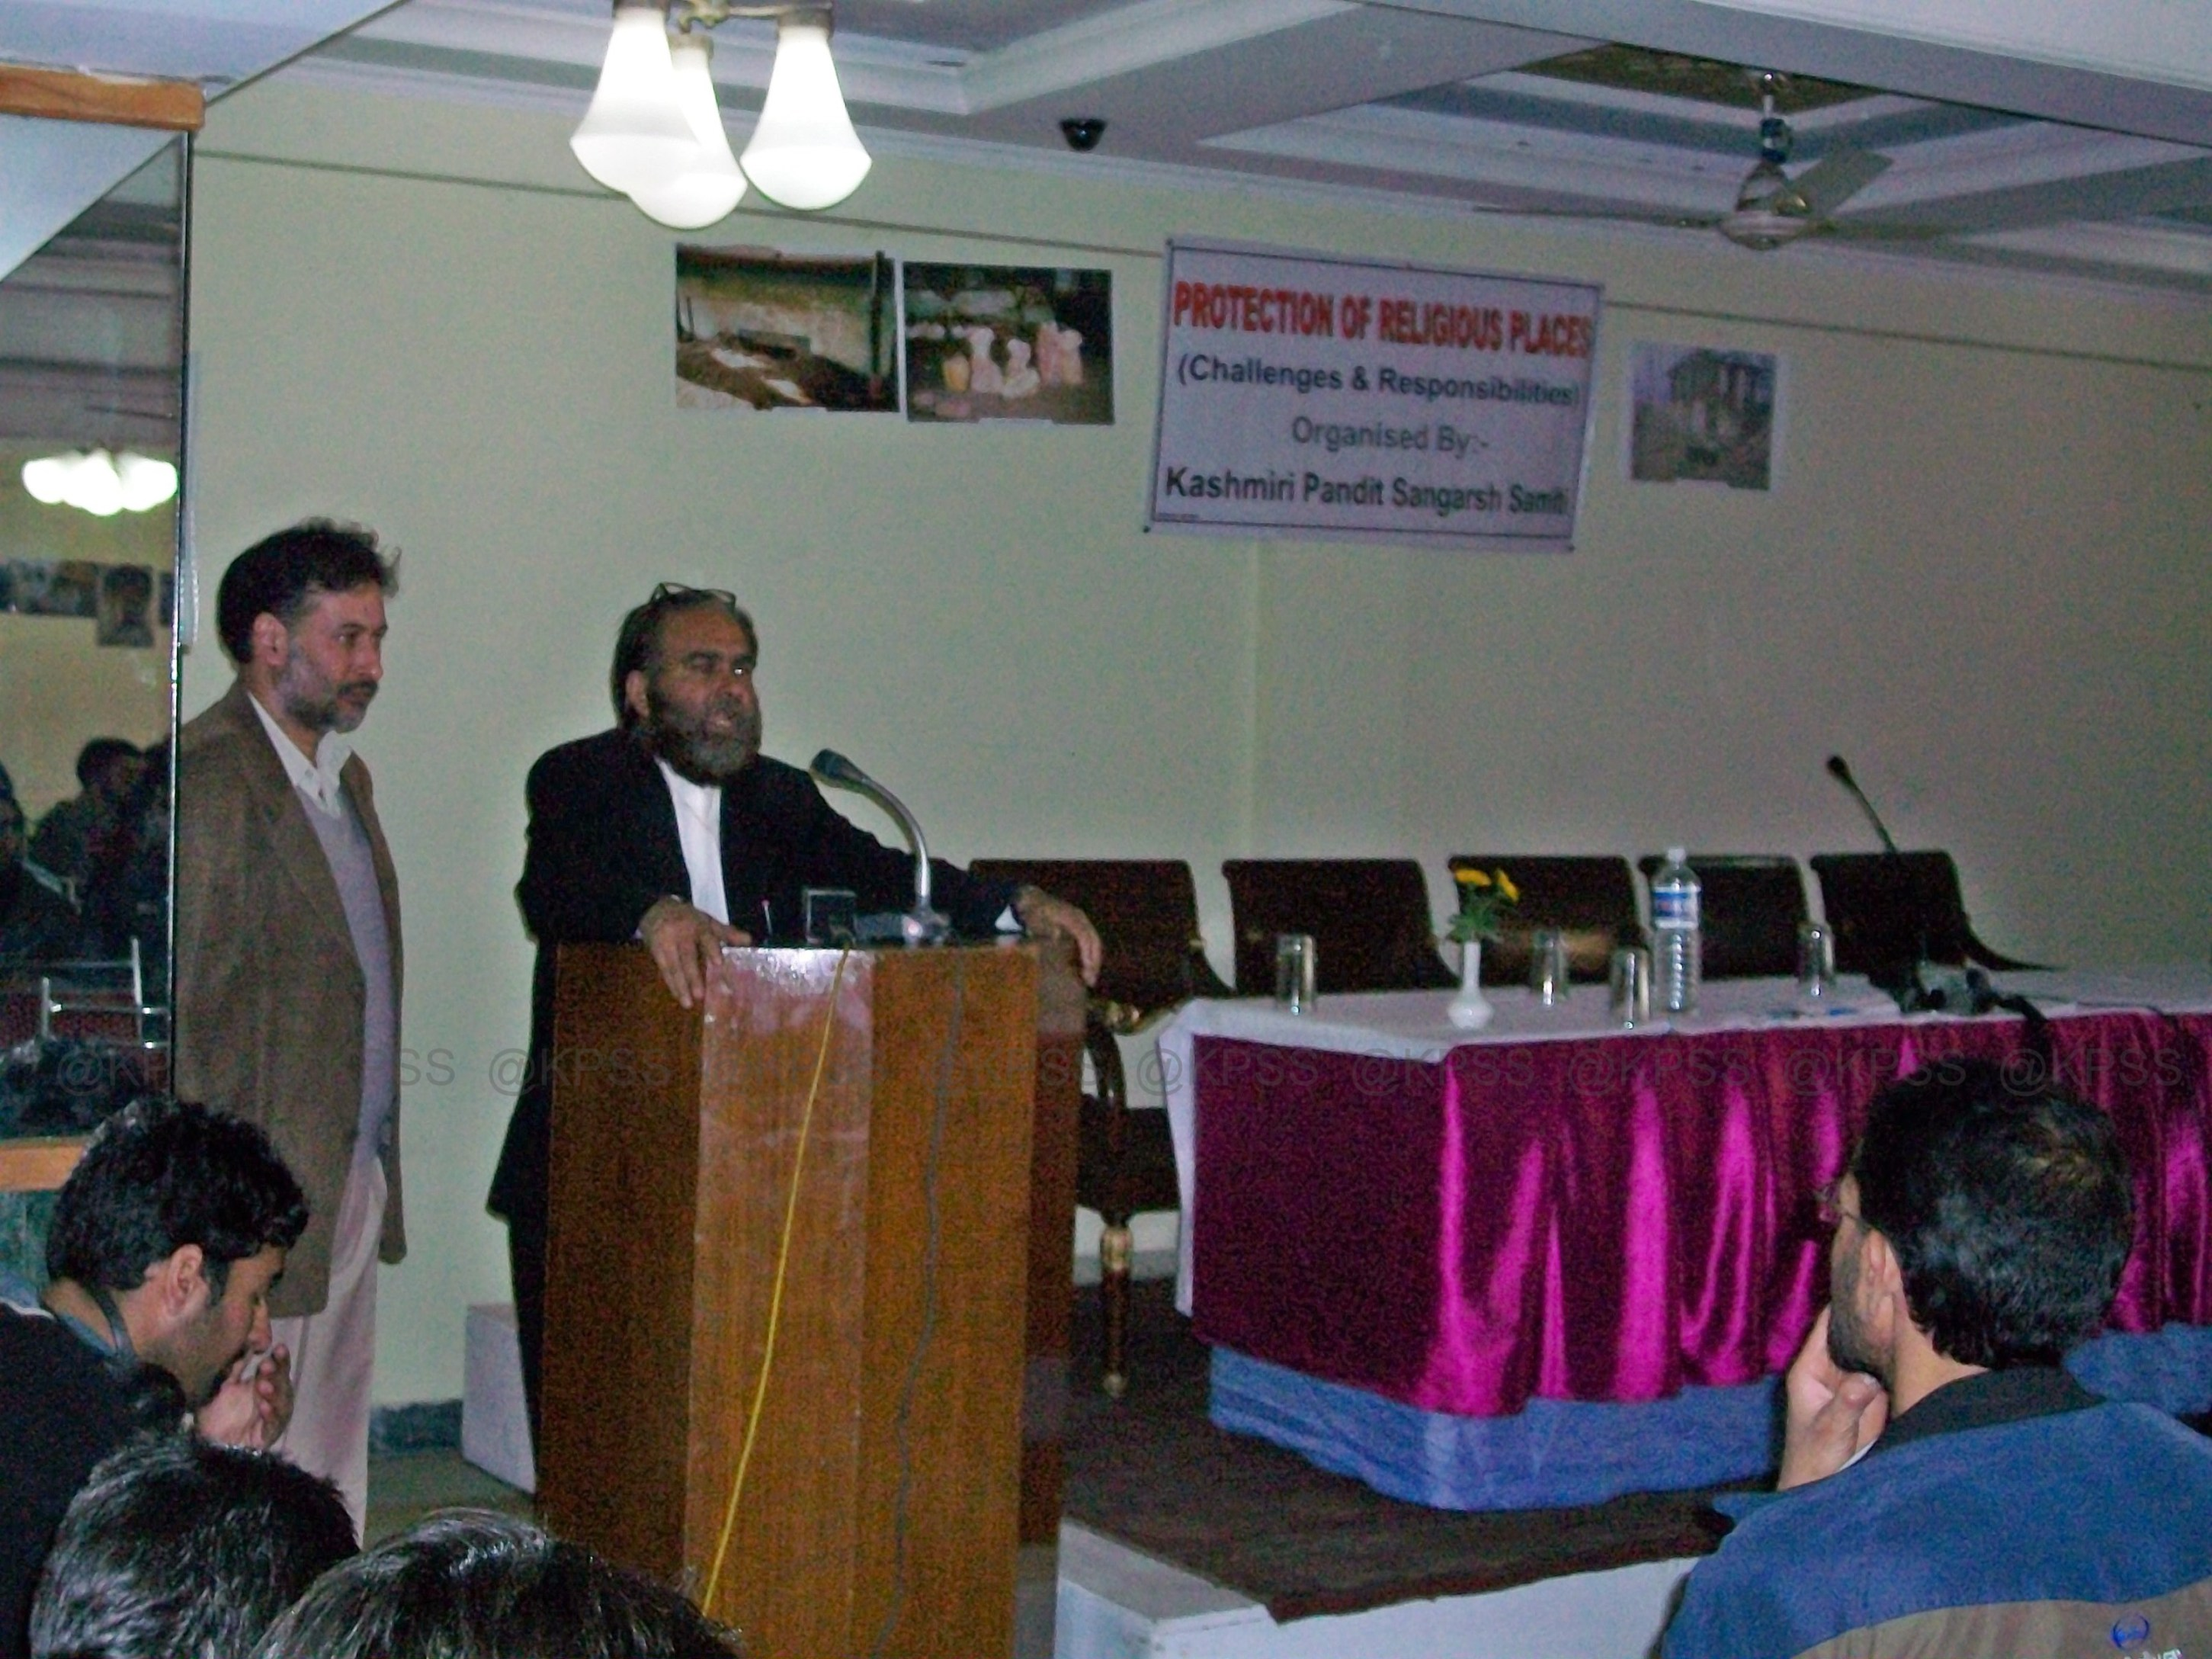 Year 2009 - KPSS - Seminar in Kashmir - Protection of Religious Places